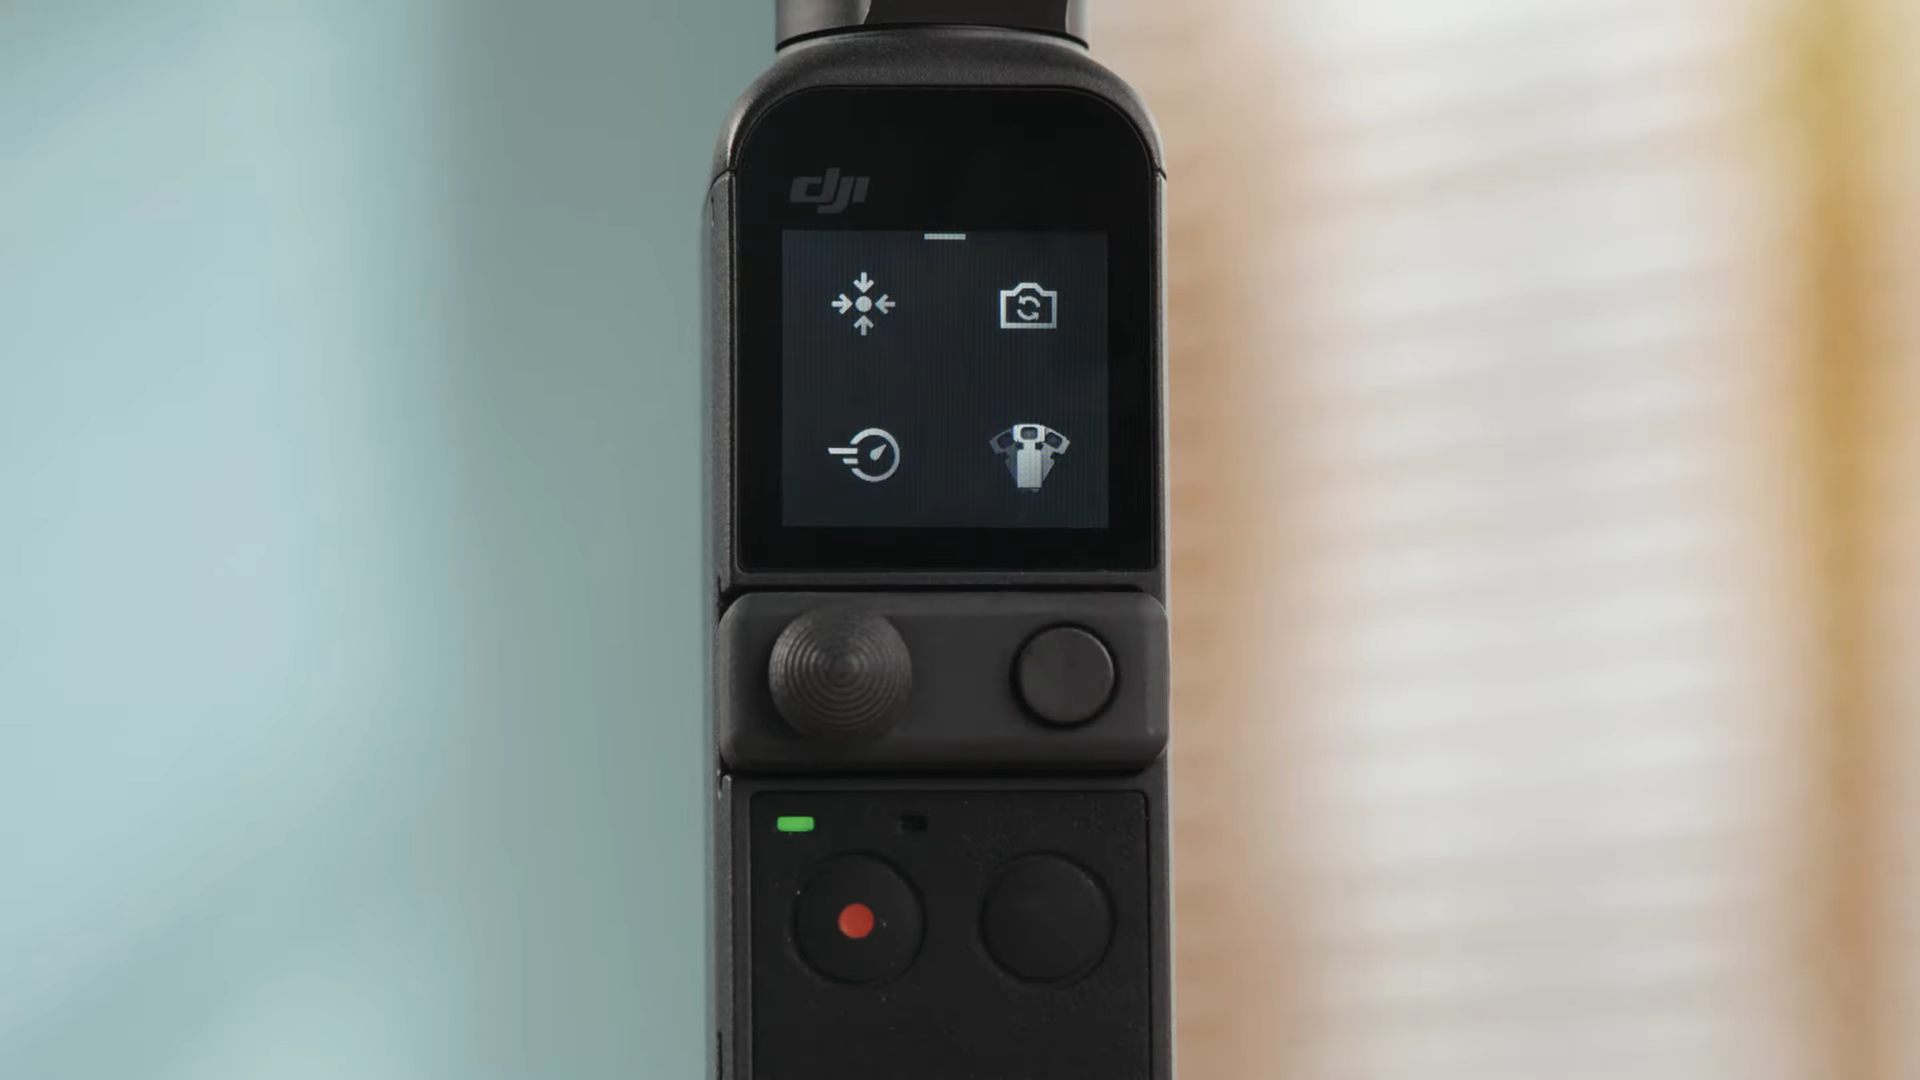 Intelligent Features for DJI Pocket 2 The DJI Pocket 2 is a smart piece of tech, combining intelligent modes and features to enhance content creation and to make it super easy and intuitive to use. Pro Mode: Control advanced settings like ISO, shutter speed, EV and focus mode. ActiveTrack 3.0: Select a subject and let Pocket 2 keep it in the frame automatically. Panorama: Choose between 180° Pano (captures four photos for landscape images) or 3X3 Pano (merges nine images for a wide and detailed view). Slow Motion: Maximum speed and resolution of 8x at 1080p. Livestreaming: Livestream directly to Facebook, YouTube, or RTMP. Timelapse, Hyperlapse, Motionlapse: Three different time-lapse operations. Hyperlapse automatically integrates Electronic Image Stabilisation (EIS) for added smoothness. Users have the ability to save individual images separately, record in RAW format, and use ActiveTrack 3.0. Story Mode: Pre-set camera movements, colour profiles and music. Fast Wake: Turns Pocket 2 on instantly and begins filming. Drop Aware: Gimbal locks itself in a safe position when detecting the product falling. Gimbal Locked: Keep the gimbal stable. Pause Recording: Shoot, pause and resume video recording.